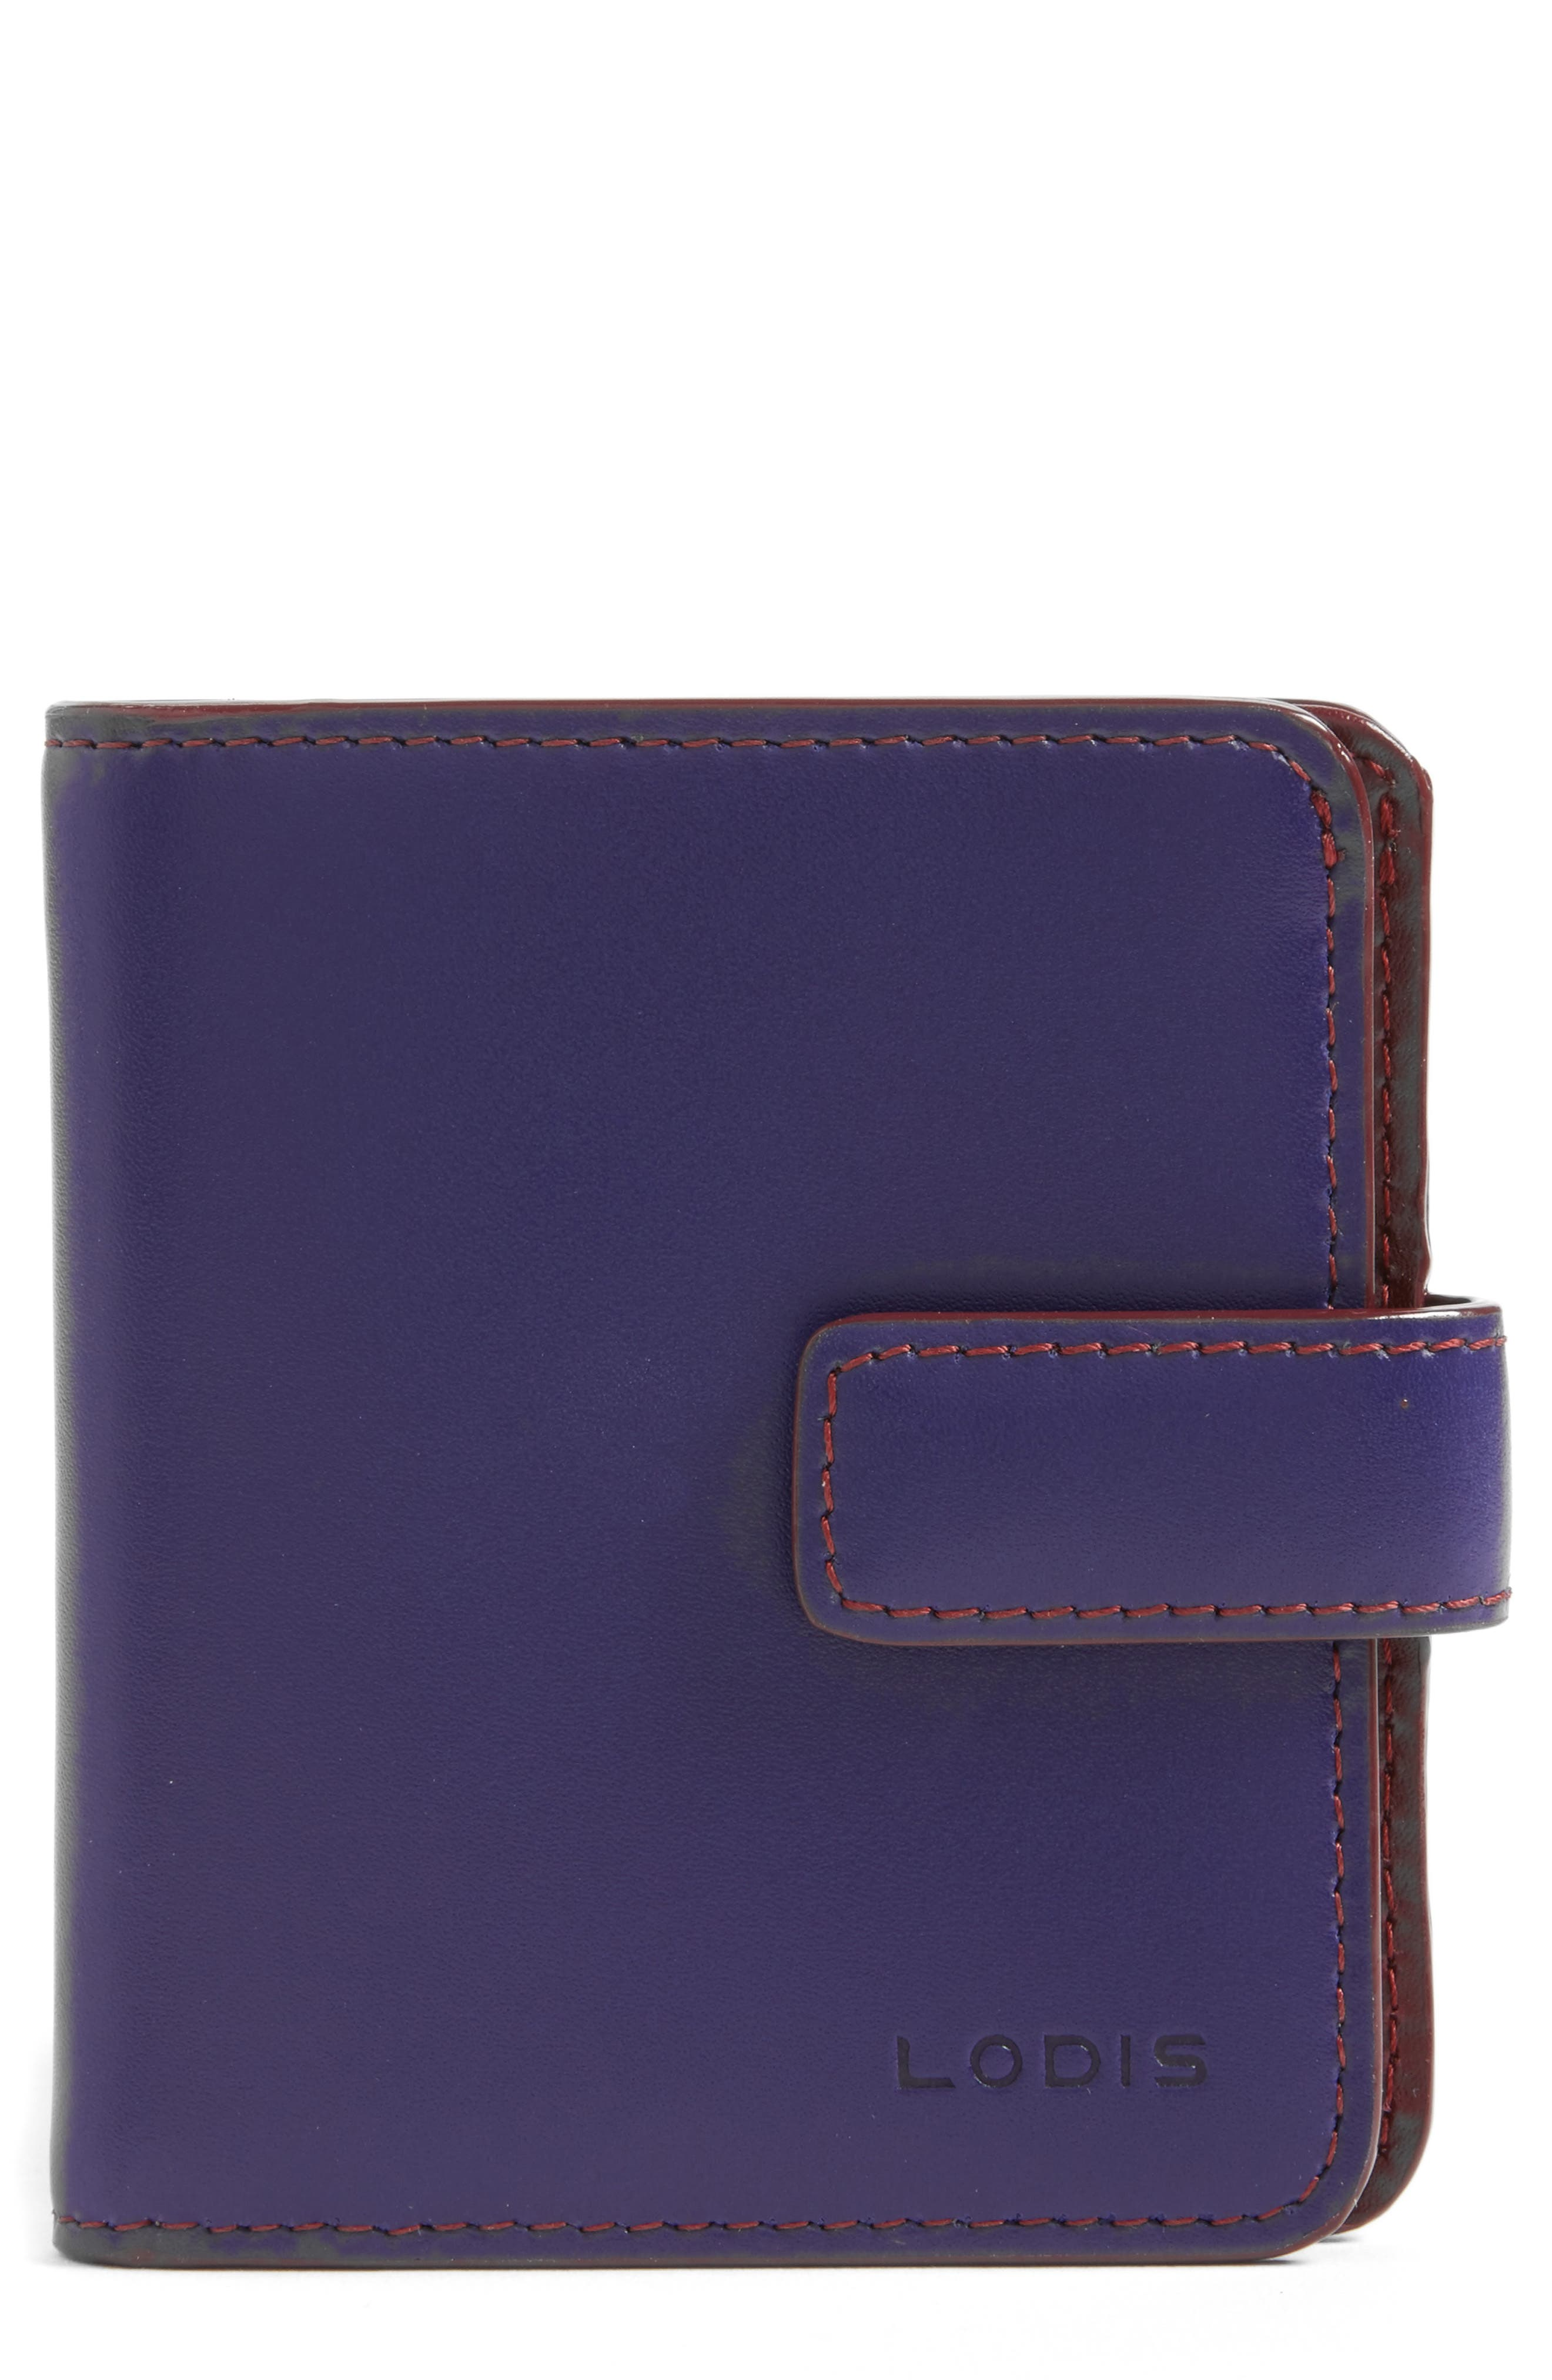 Lodis Petite Audrey RFID Leather Wallet,                         Main,                         color, Midnight/ Chianti